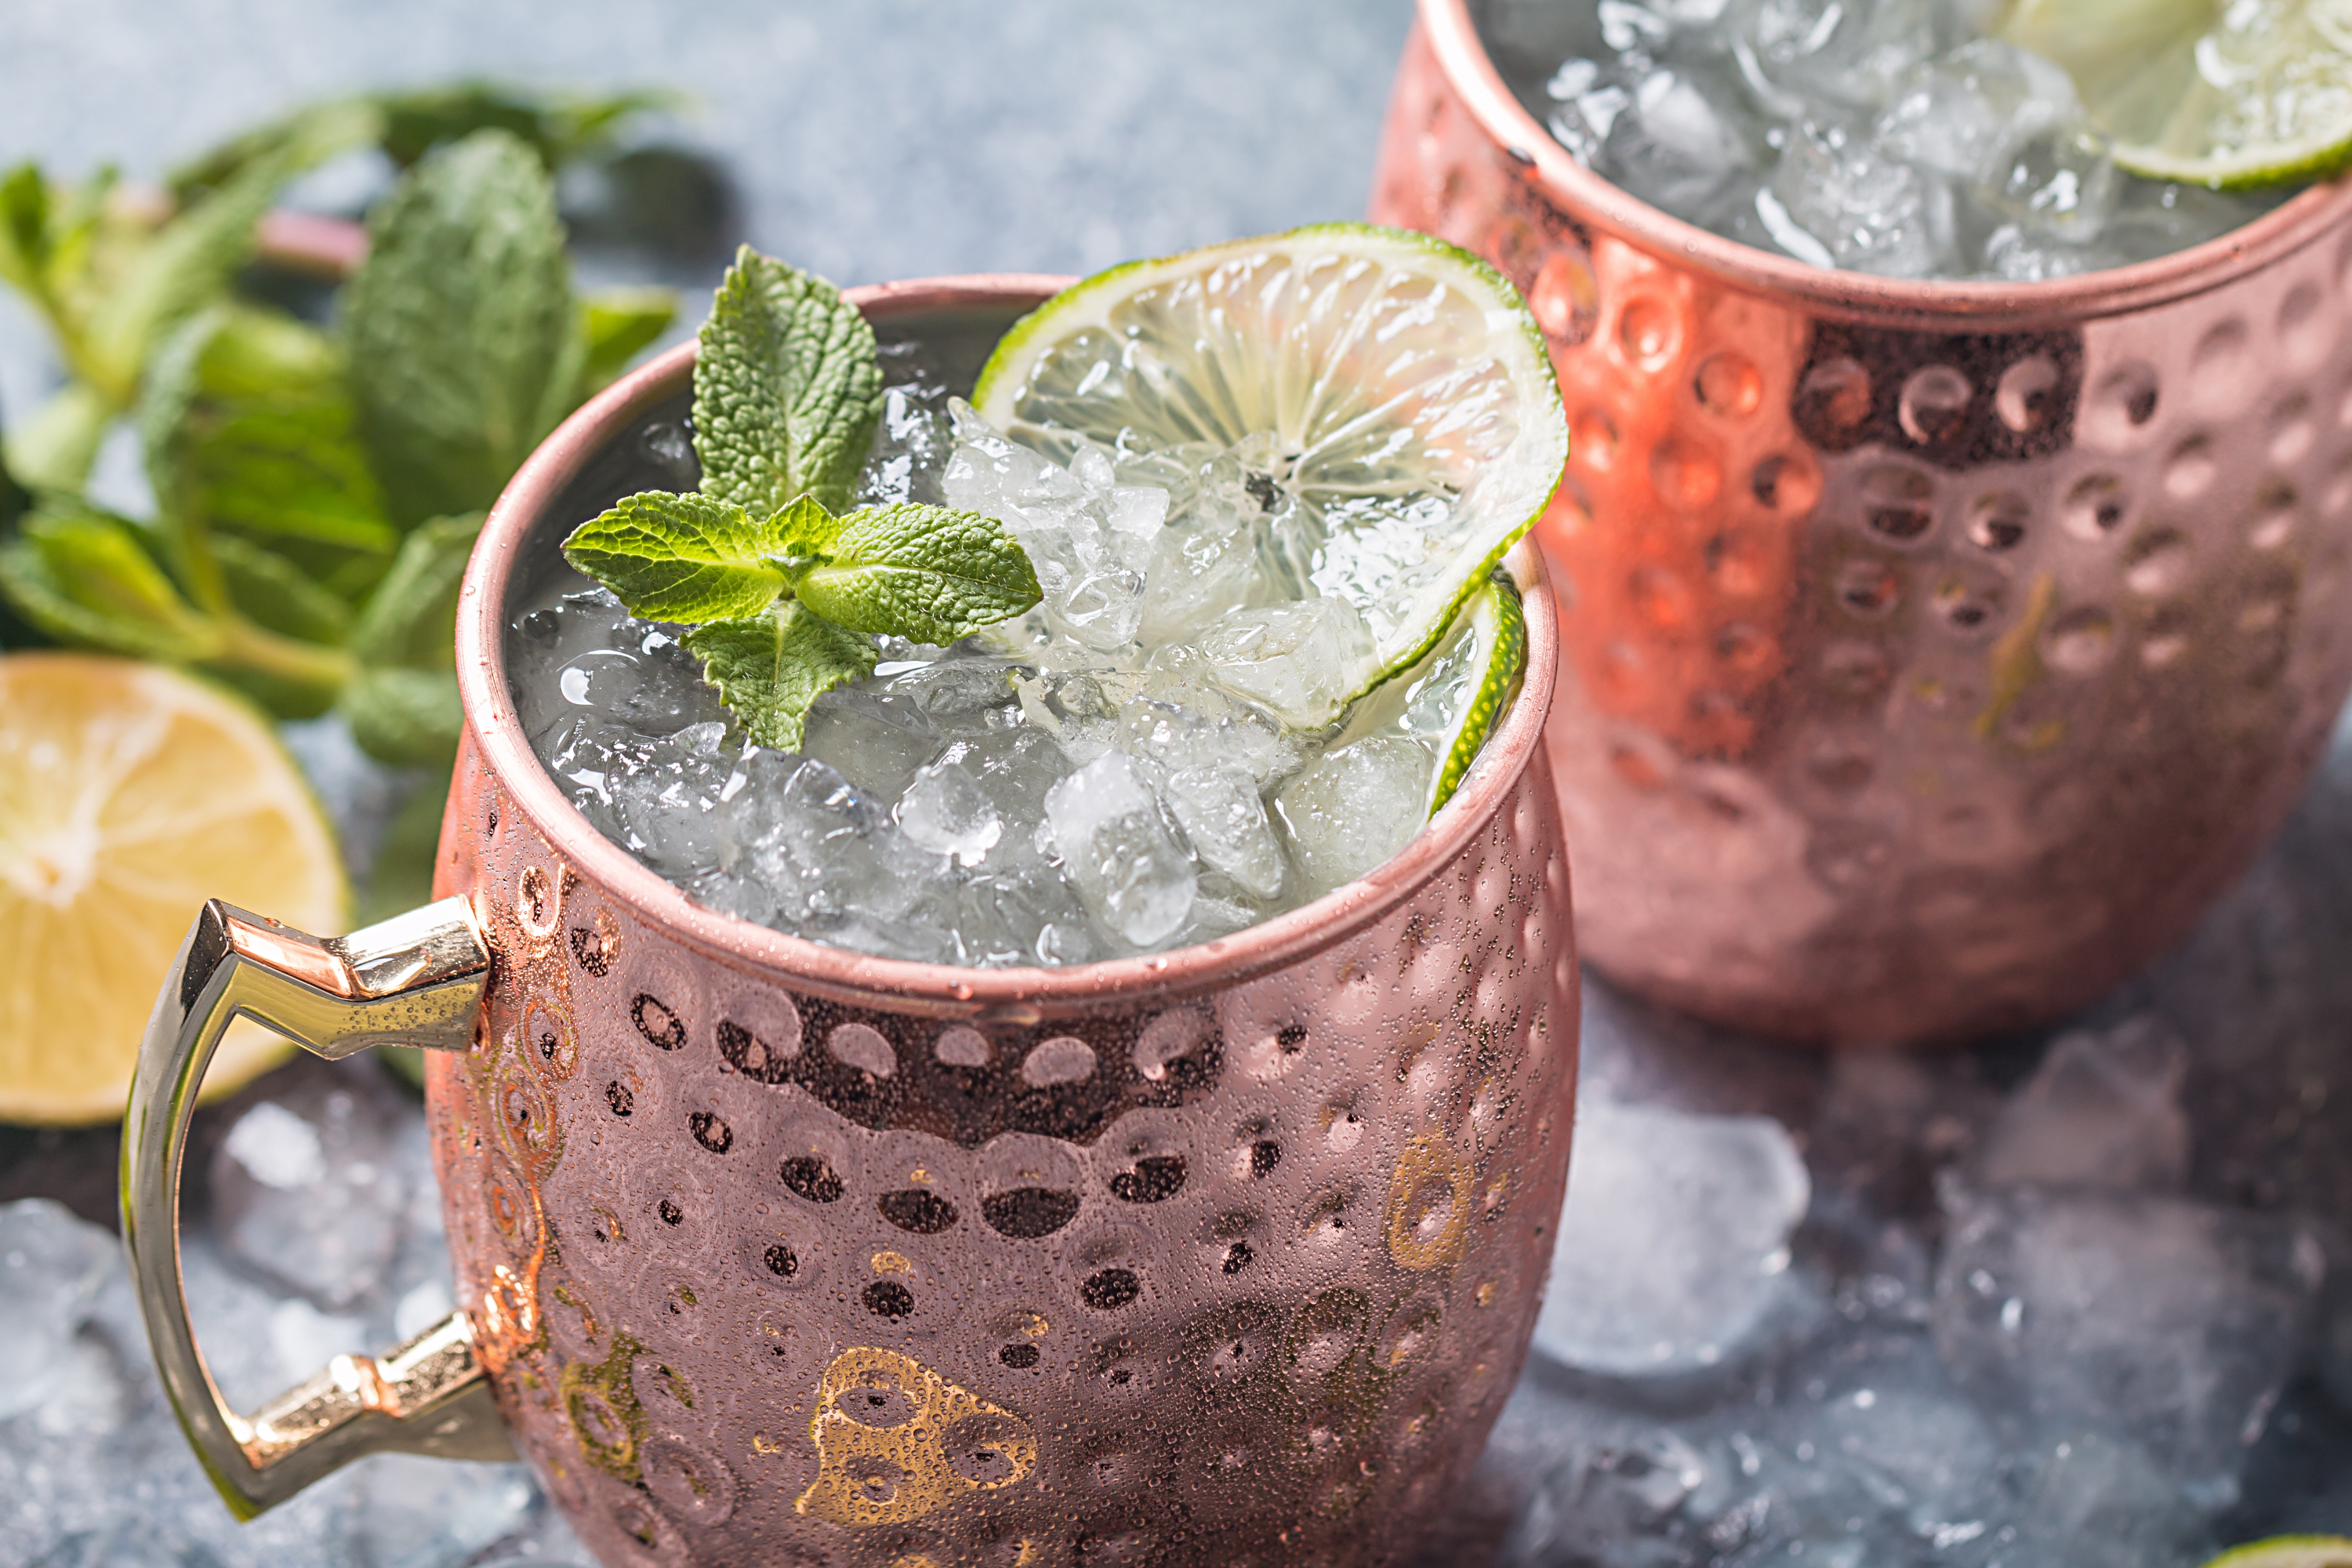 From Moscow To Mexico — Try Tribe's CBD Mexi-Cali Mule